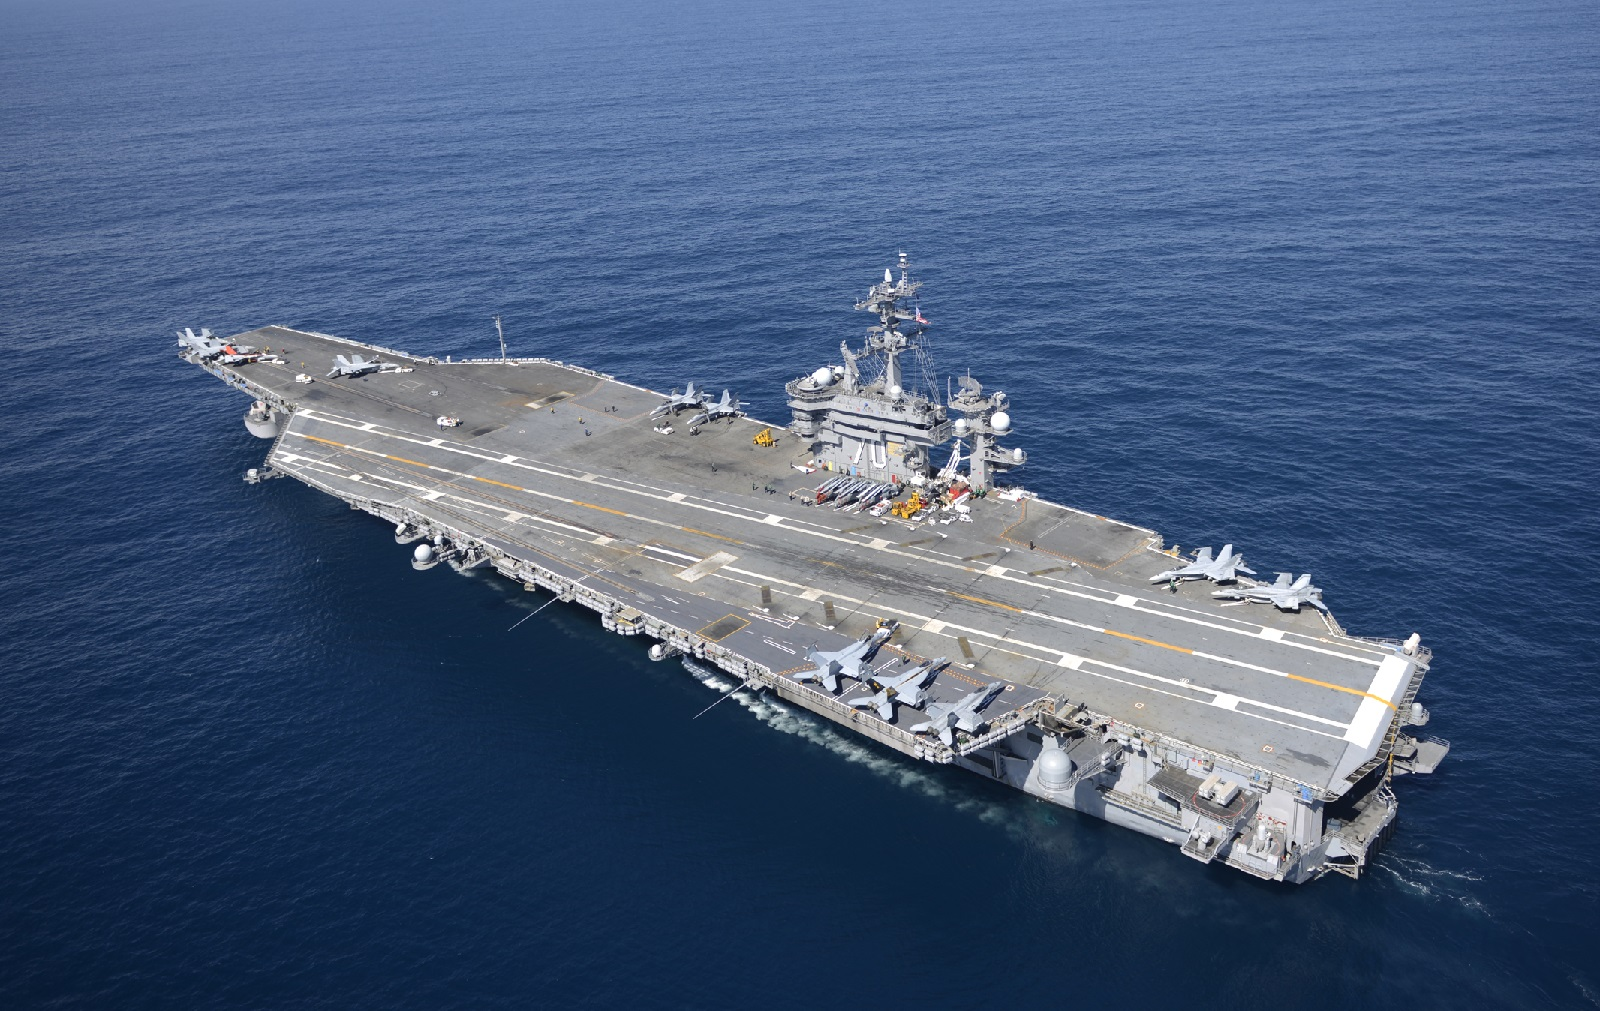 The U.S. Navy Loves Aircraft Carriers. Why Doesn't Russia?